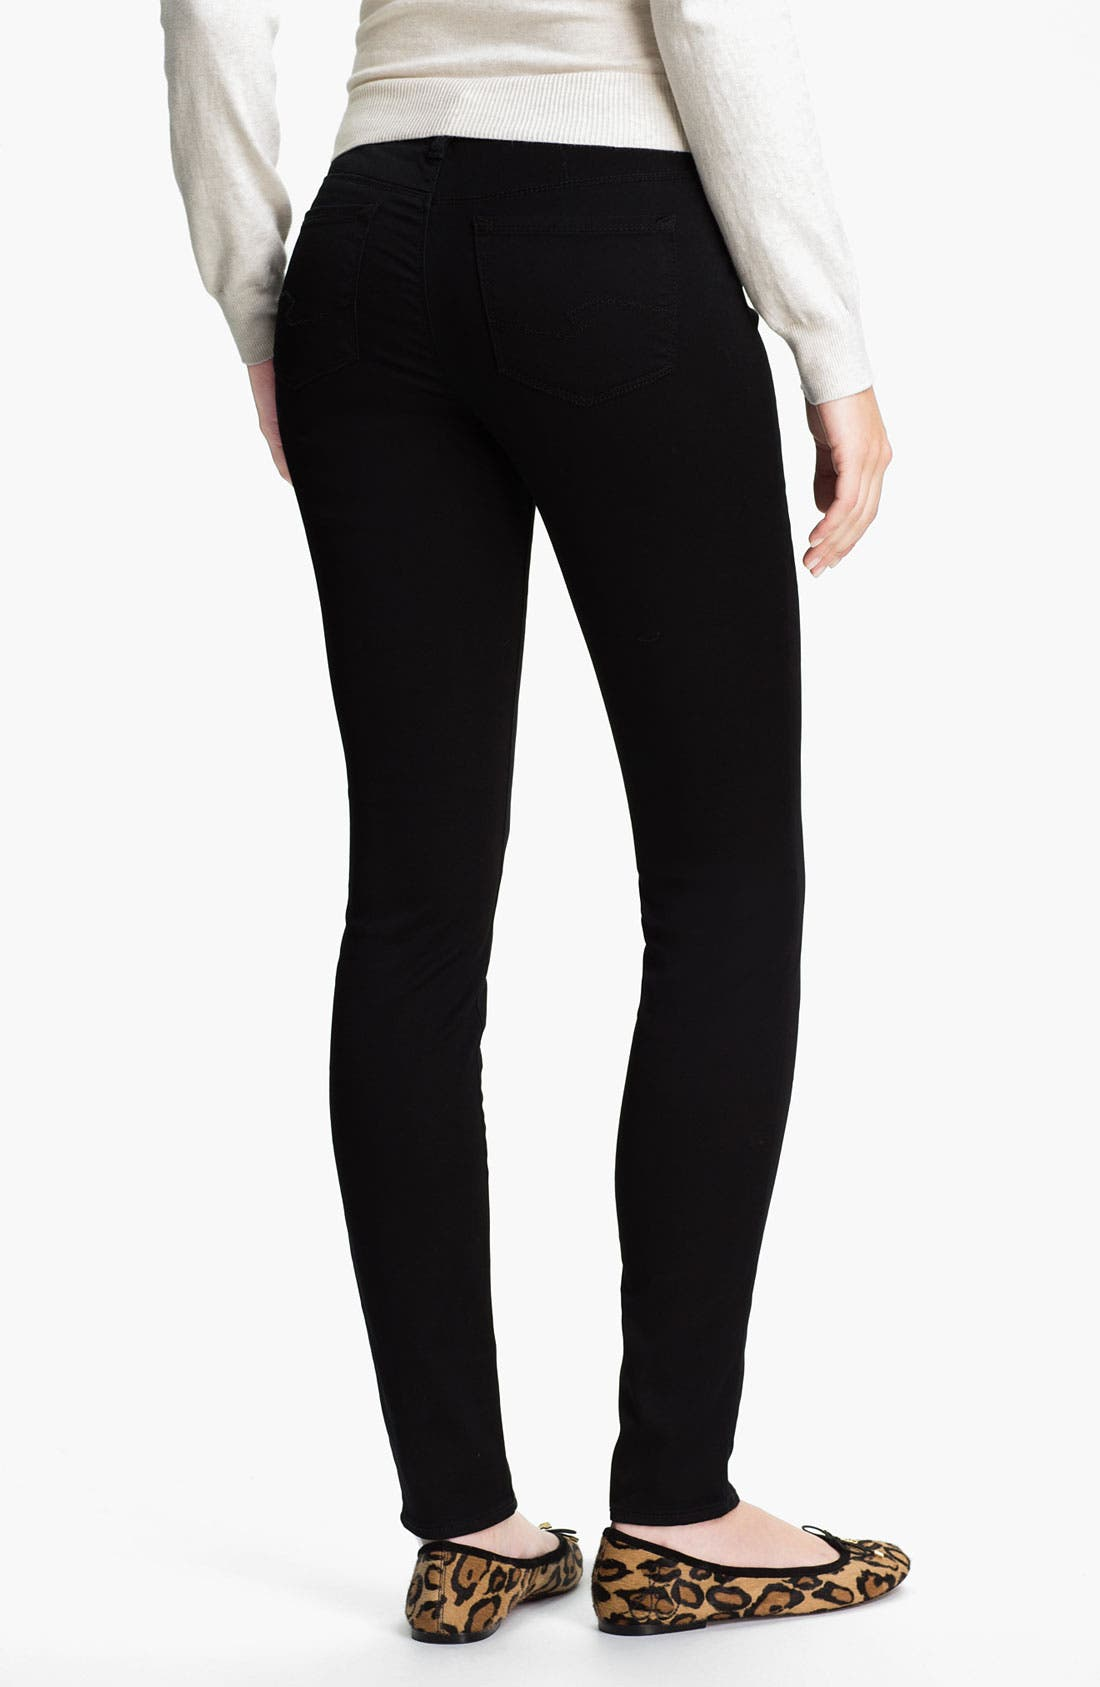 Main Image - Silver Jeans Co. 'Ashlee' Stretch Skinny Jeans (Juniors)